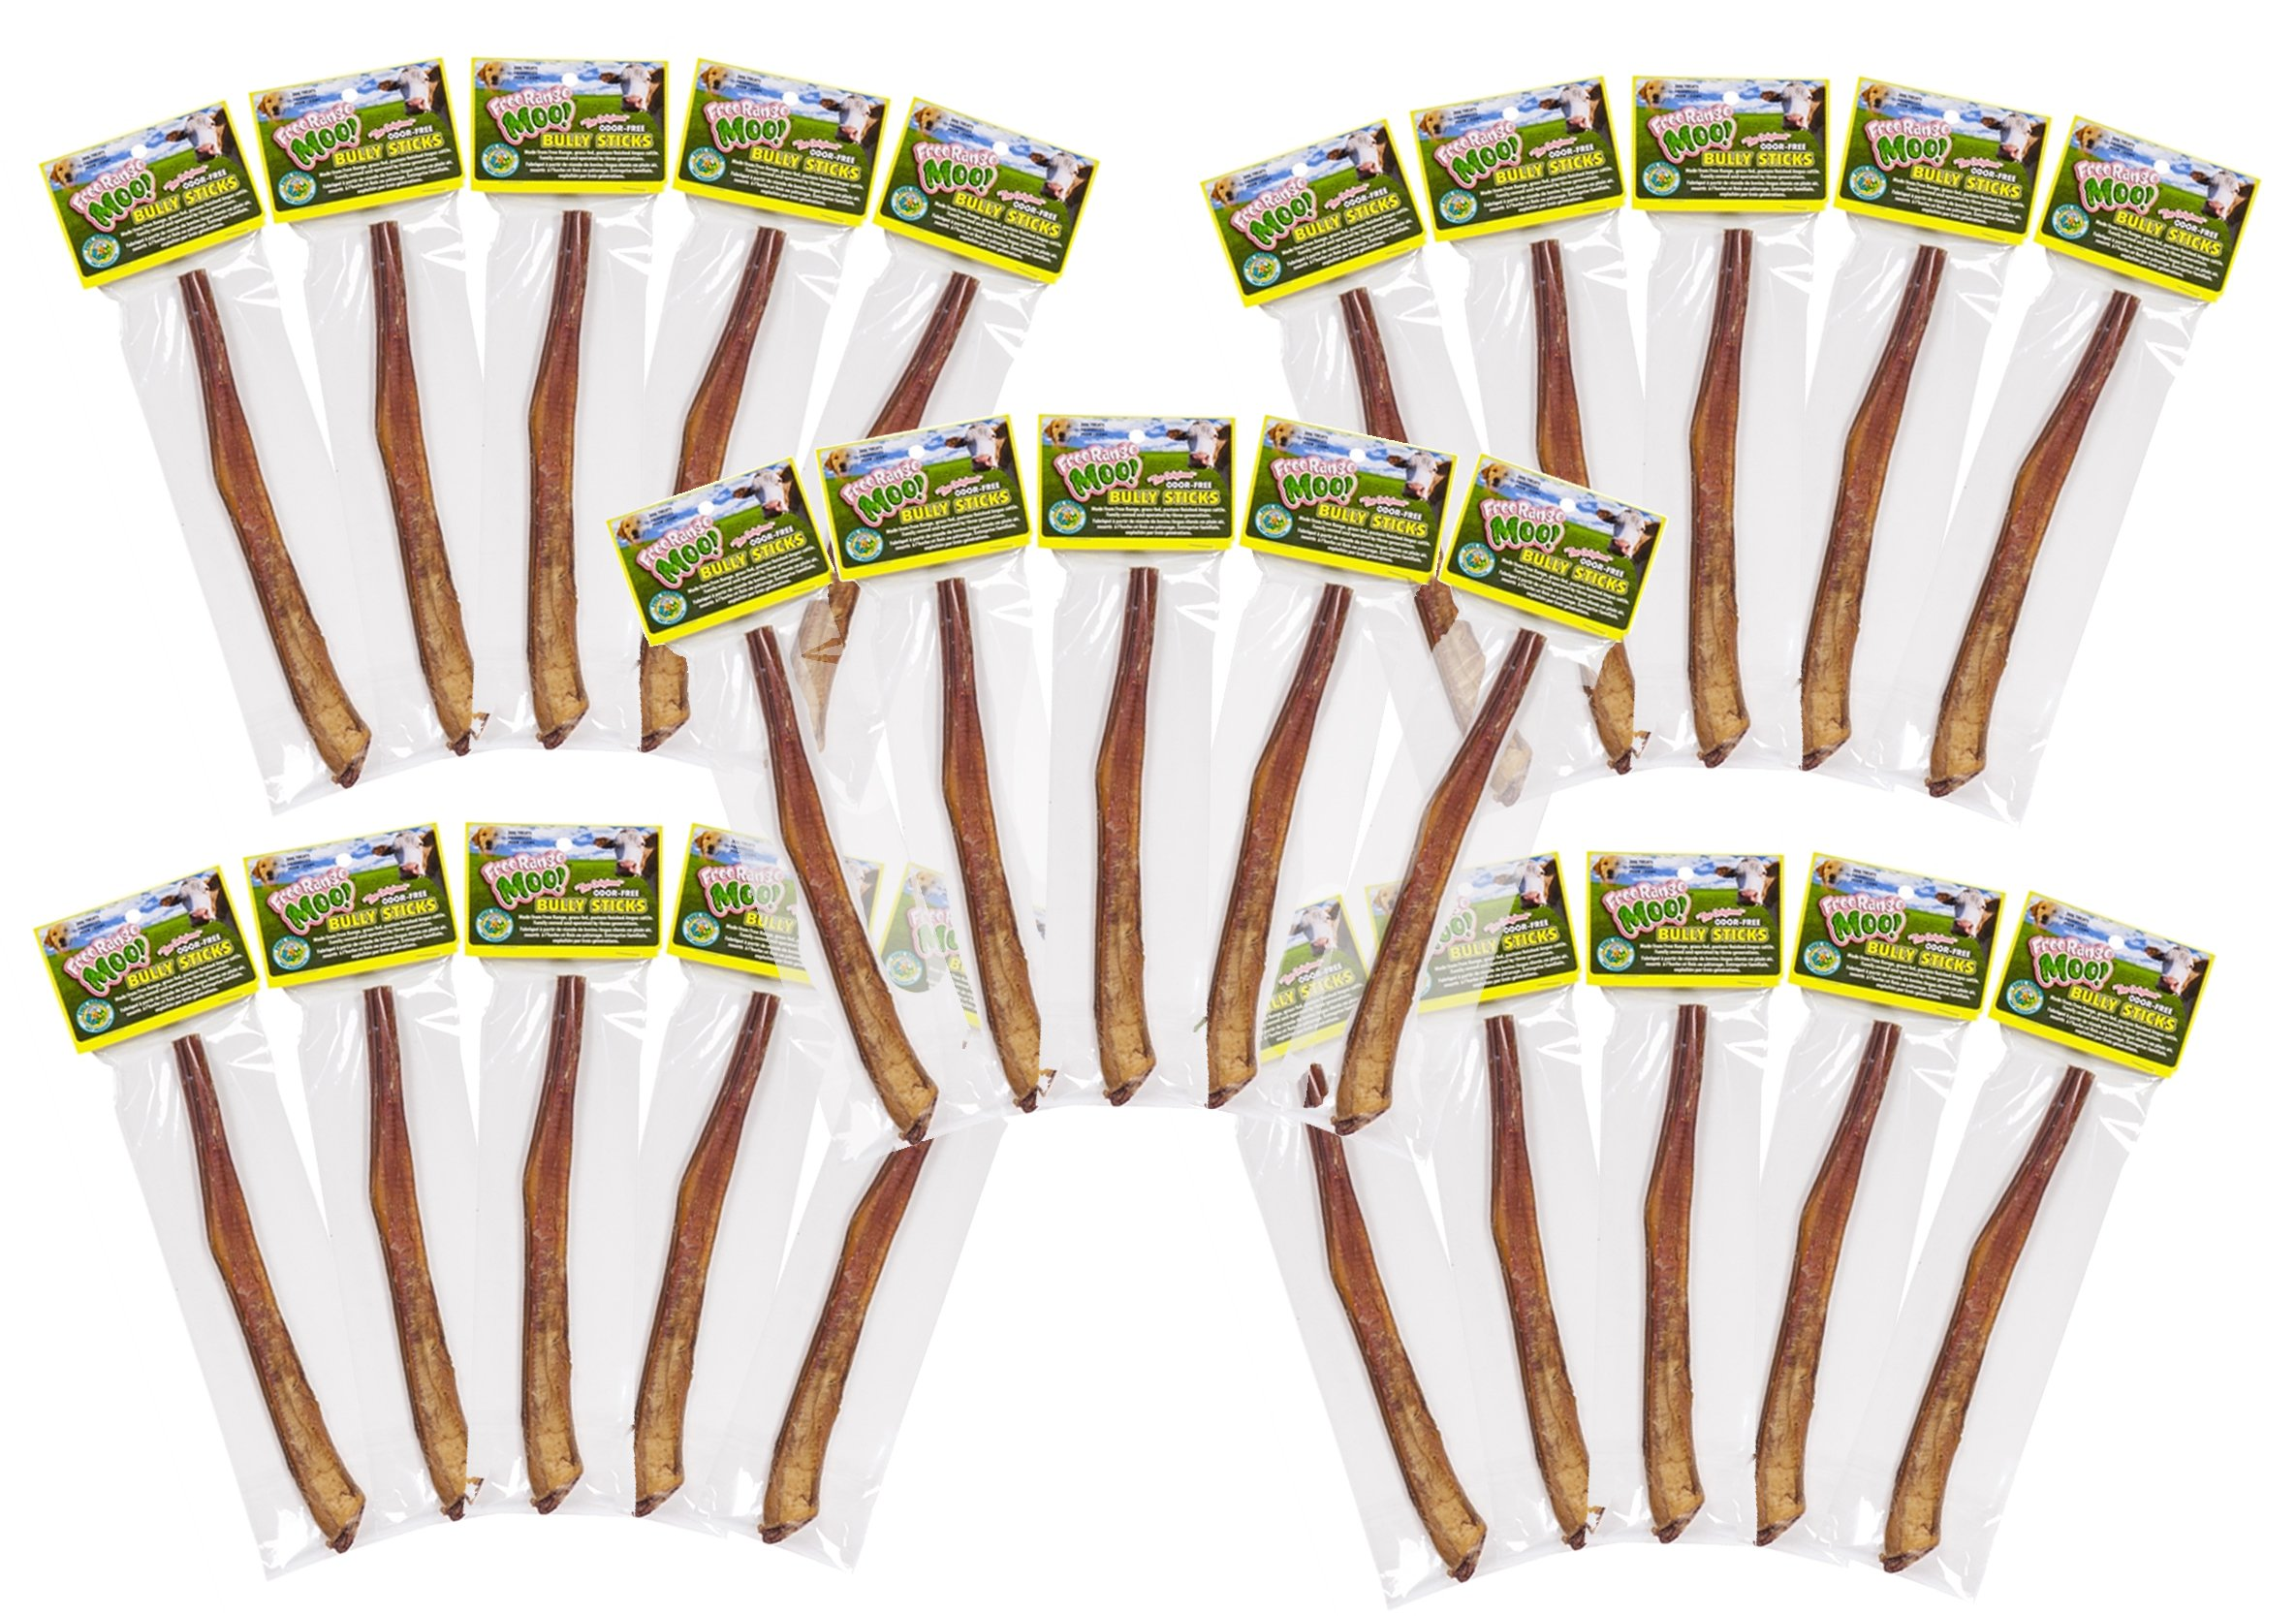 Free Raised Pet Products, 11-12 inch Supreme Bully Sticks, 30 Pack